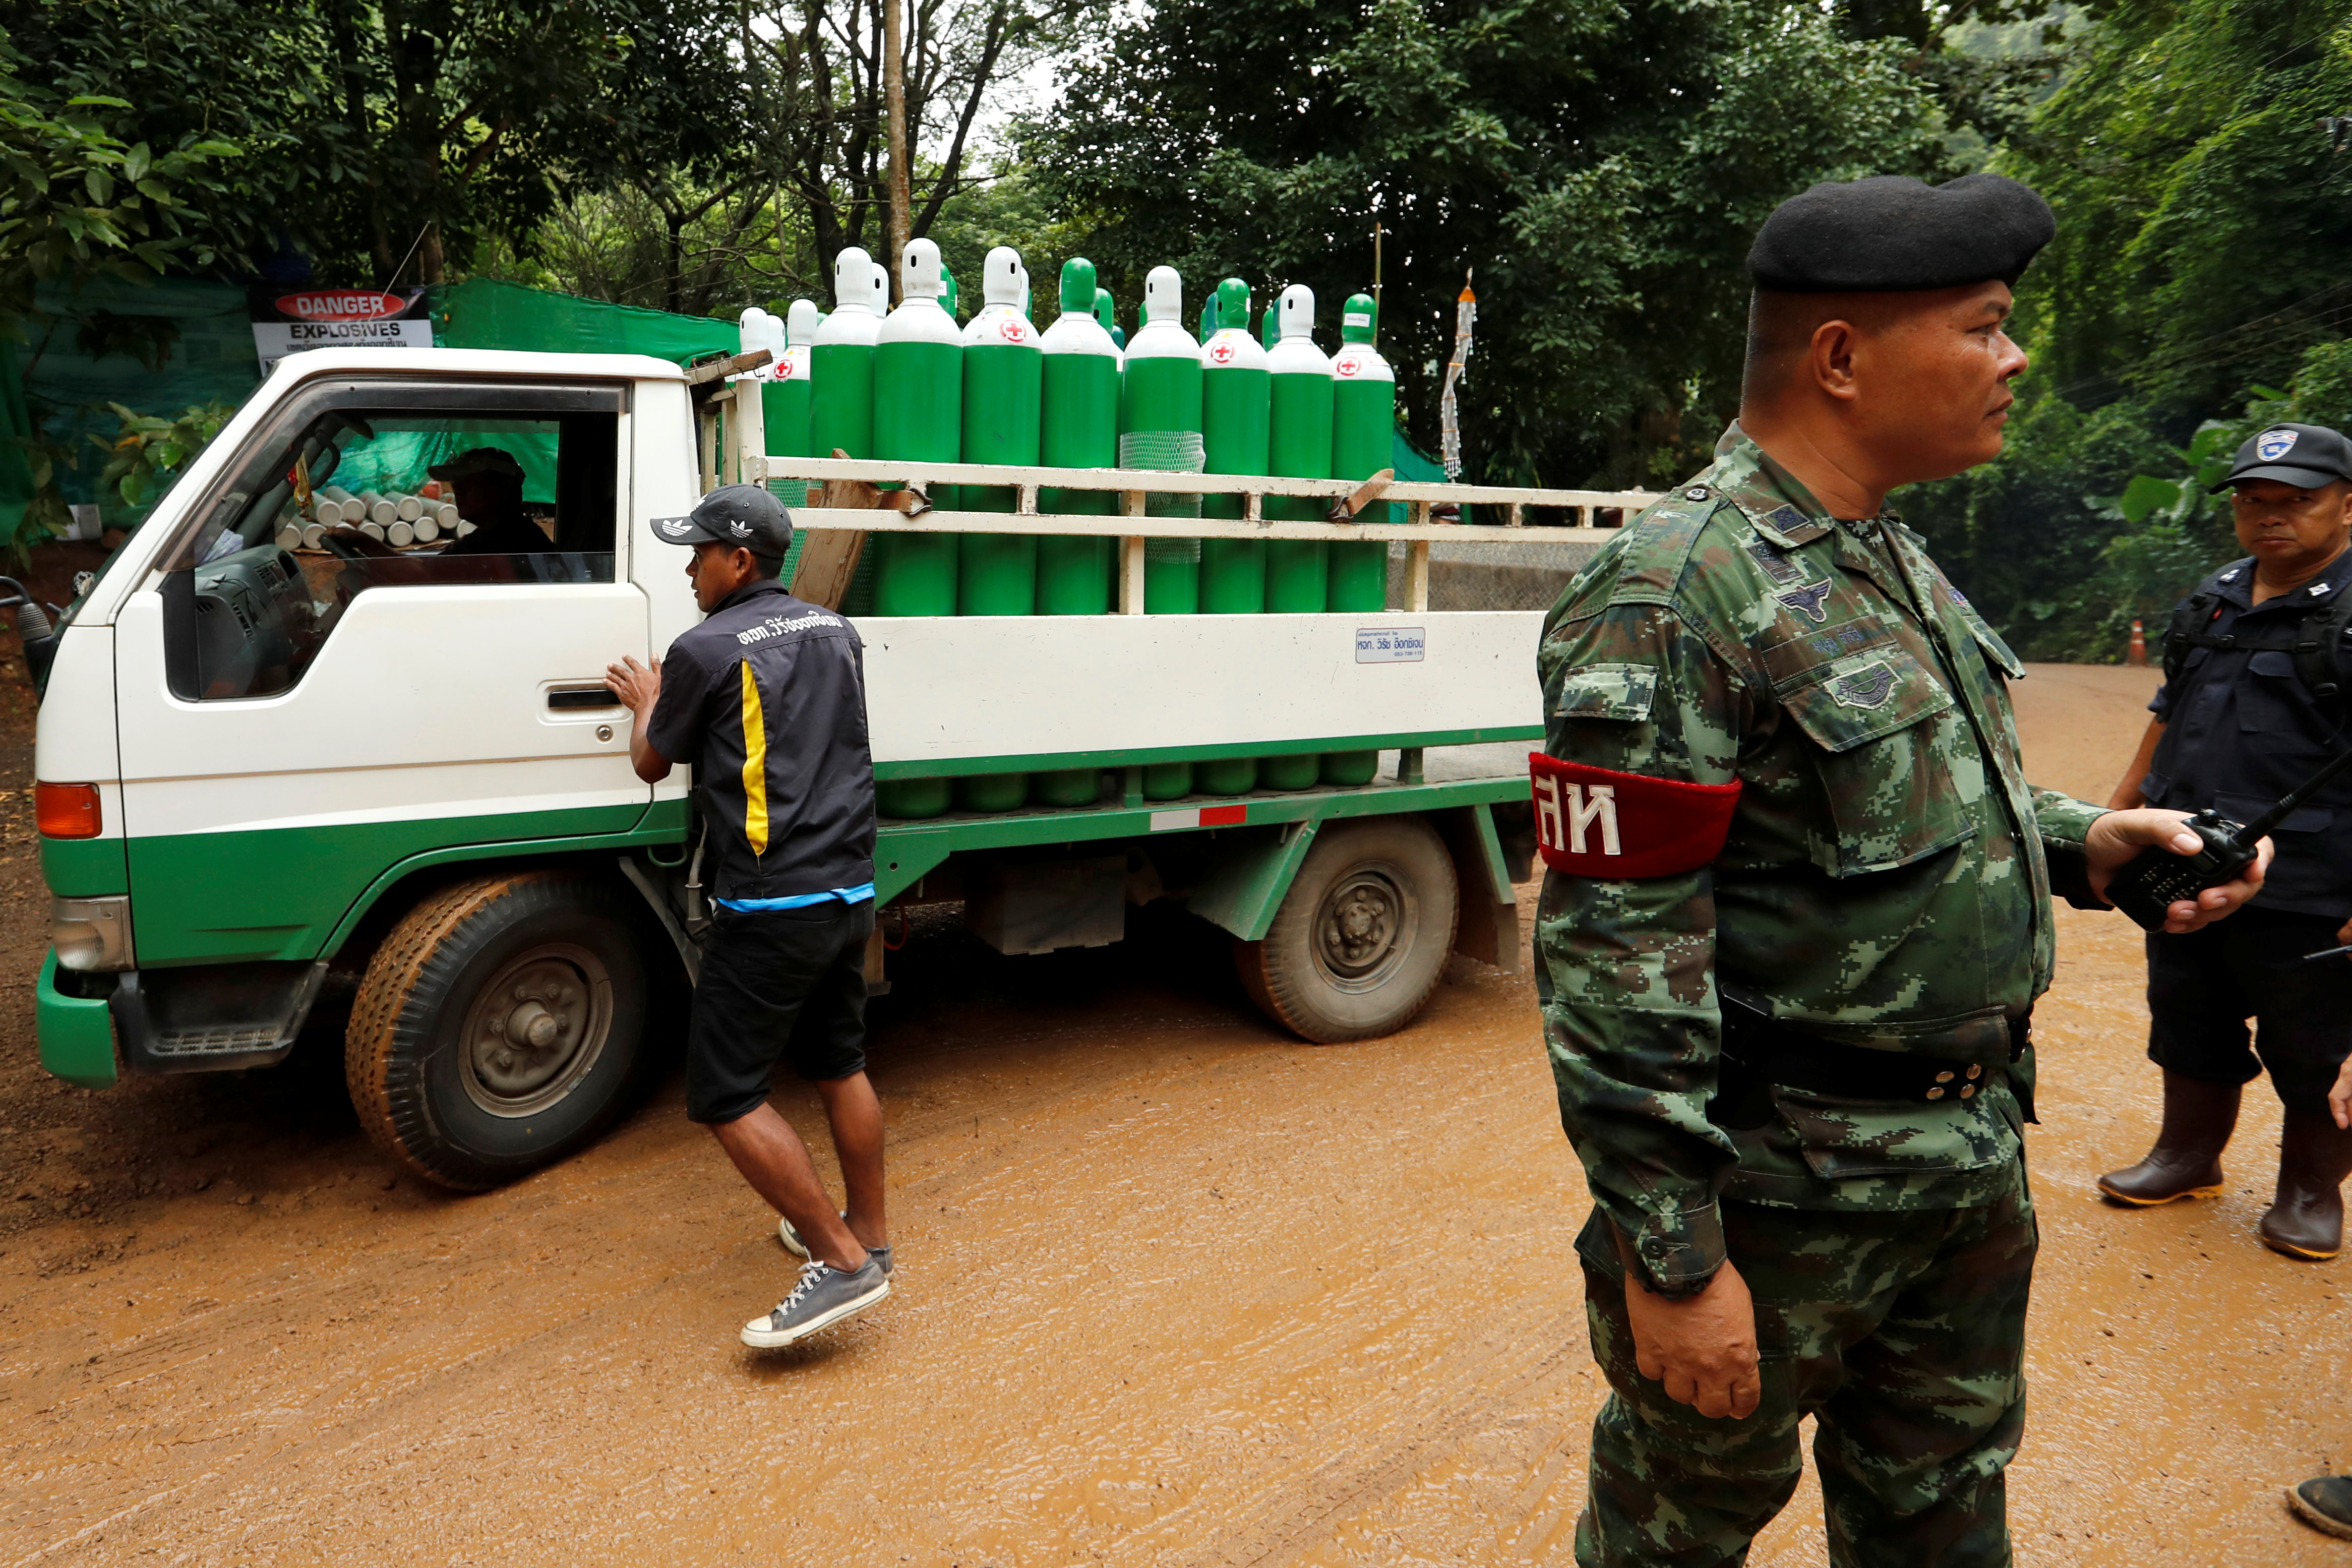 A truck carrying oxygen tanks arrives outside the Tham Luang cave complex, where 12 schoolboys and their soccer coach are trapped inside a flooded cave, in the northern province of Chiang Rai, Thailand, July 8, 2018.